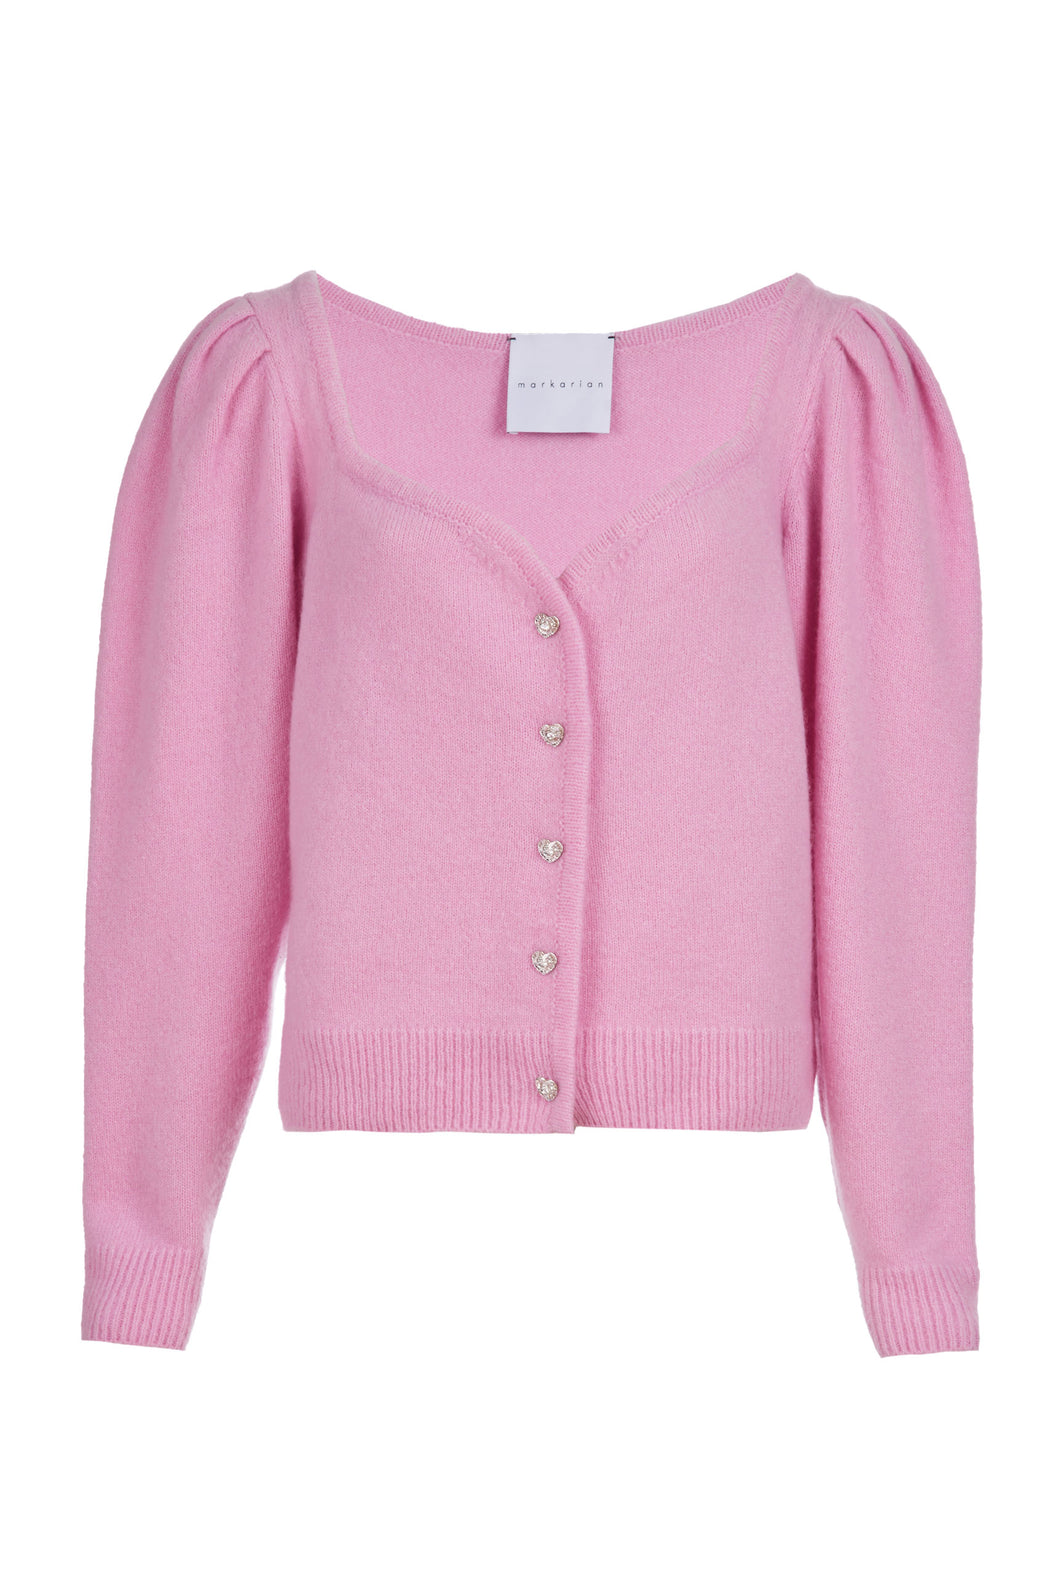 Sweetheart Neck Pink Cashmere Cardigan with Crystal Heart Buttons